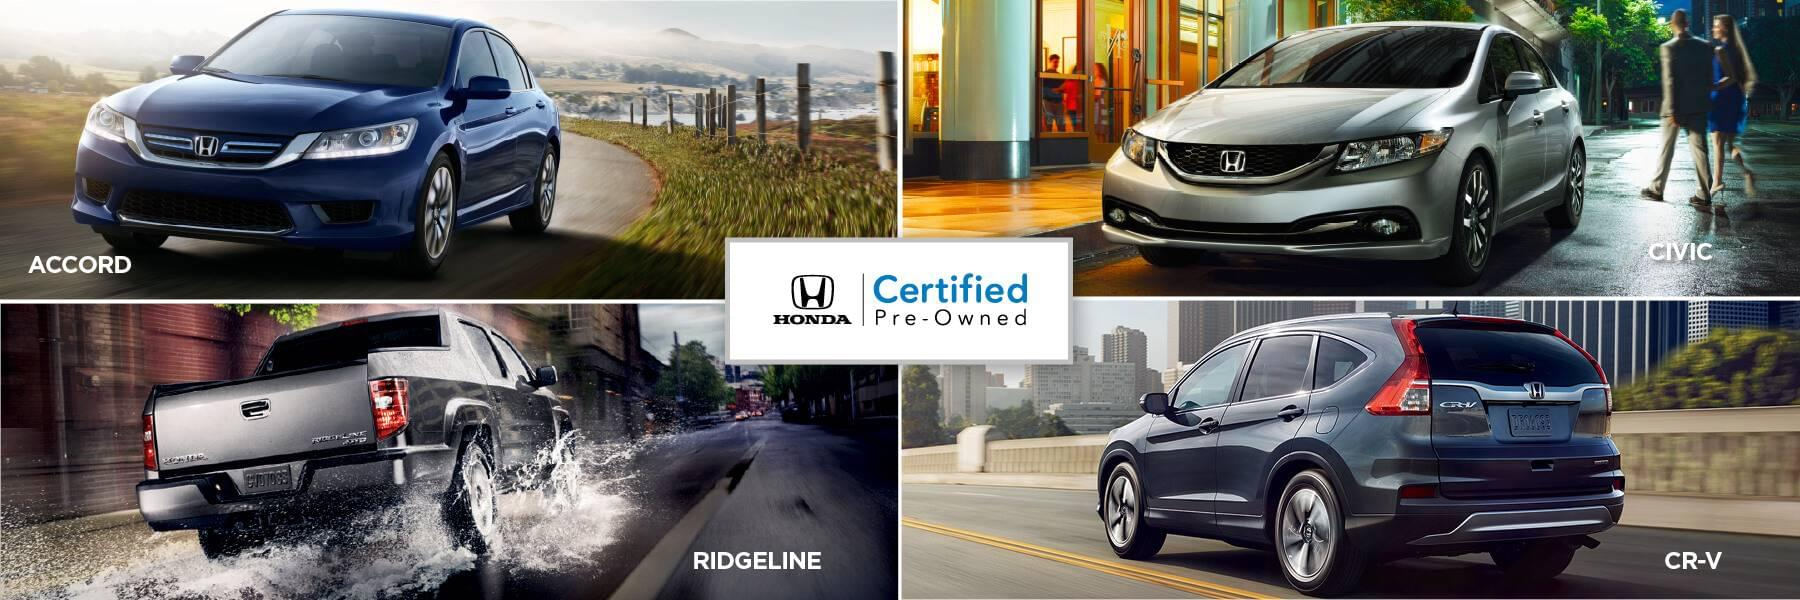 Honda Certified Pre-Owned Vehicles